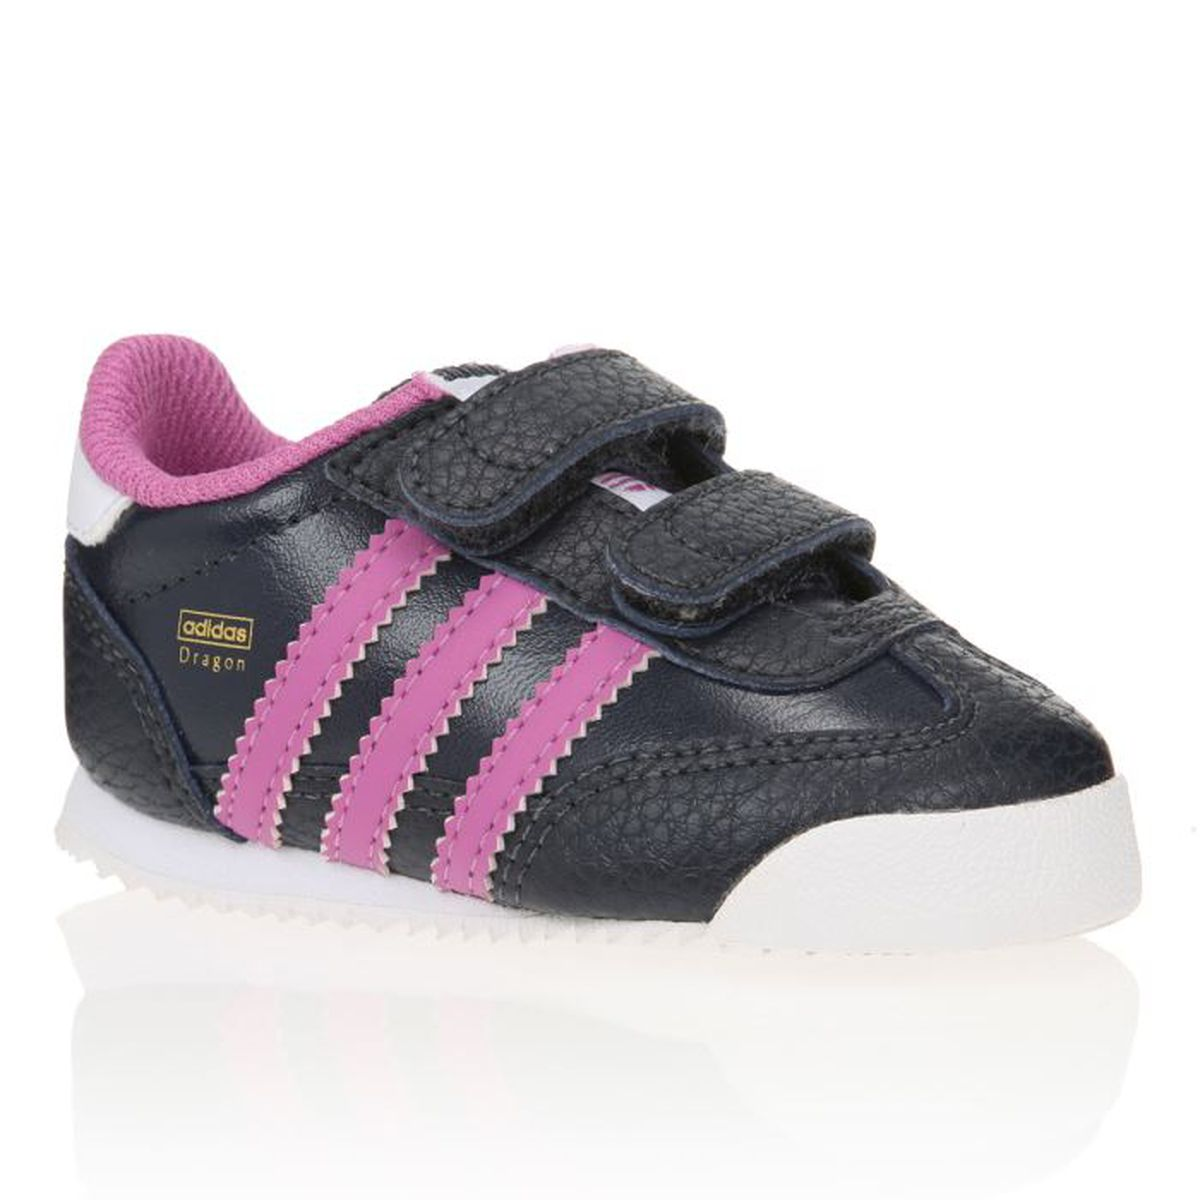 basket adidas dragon fille